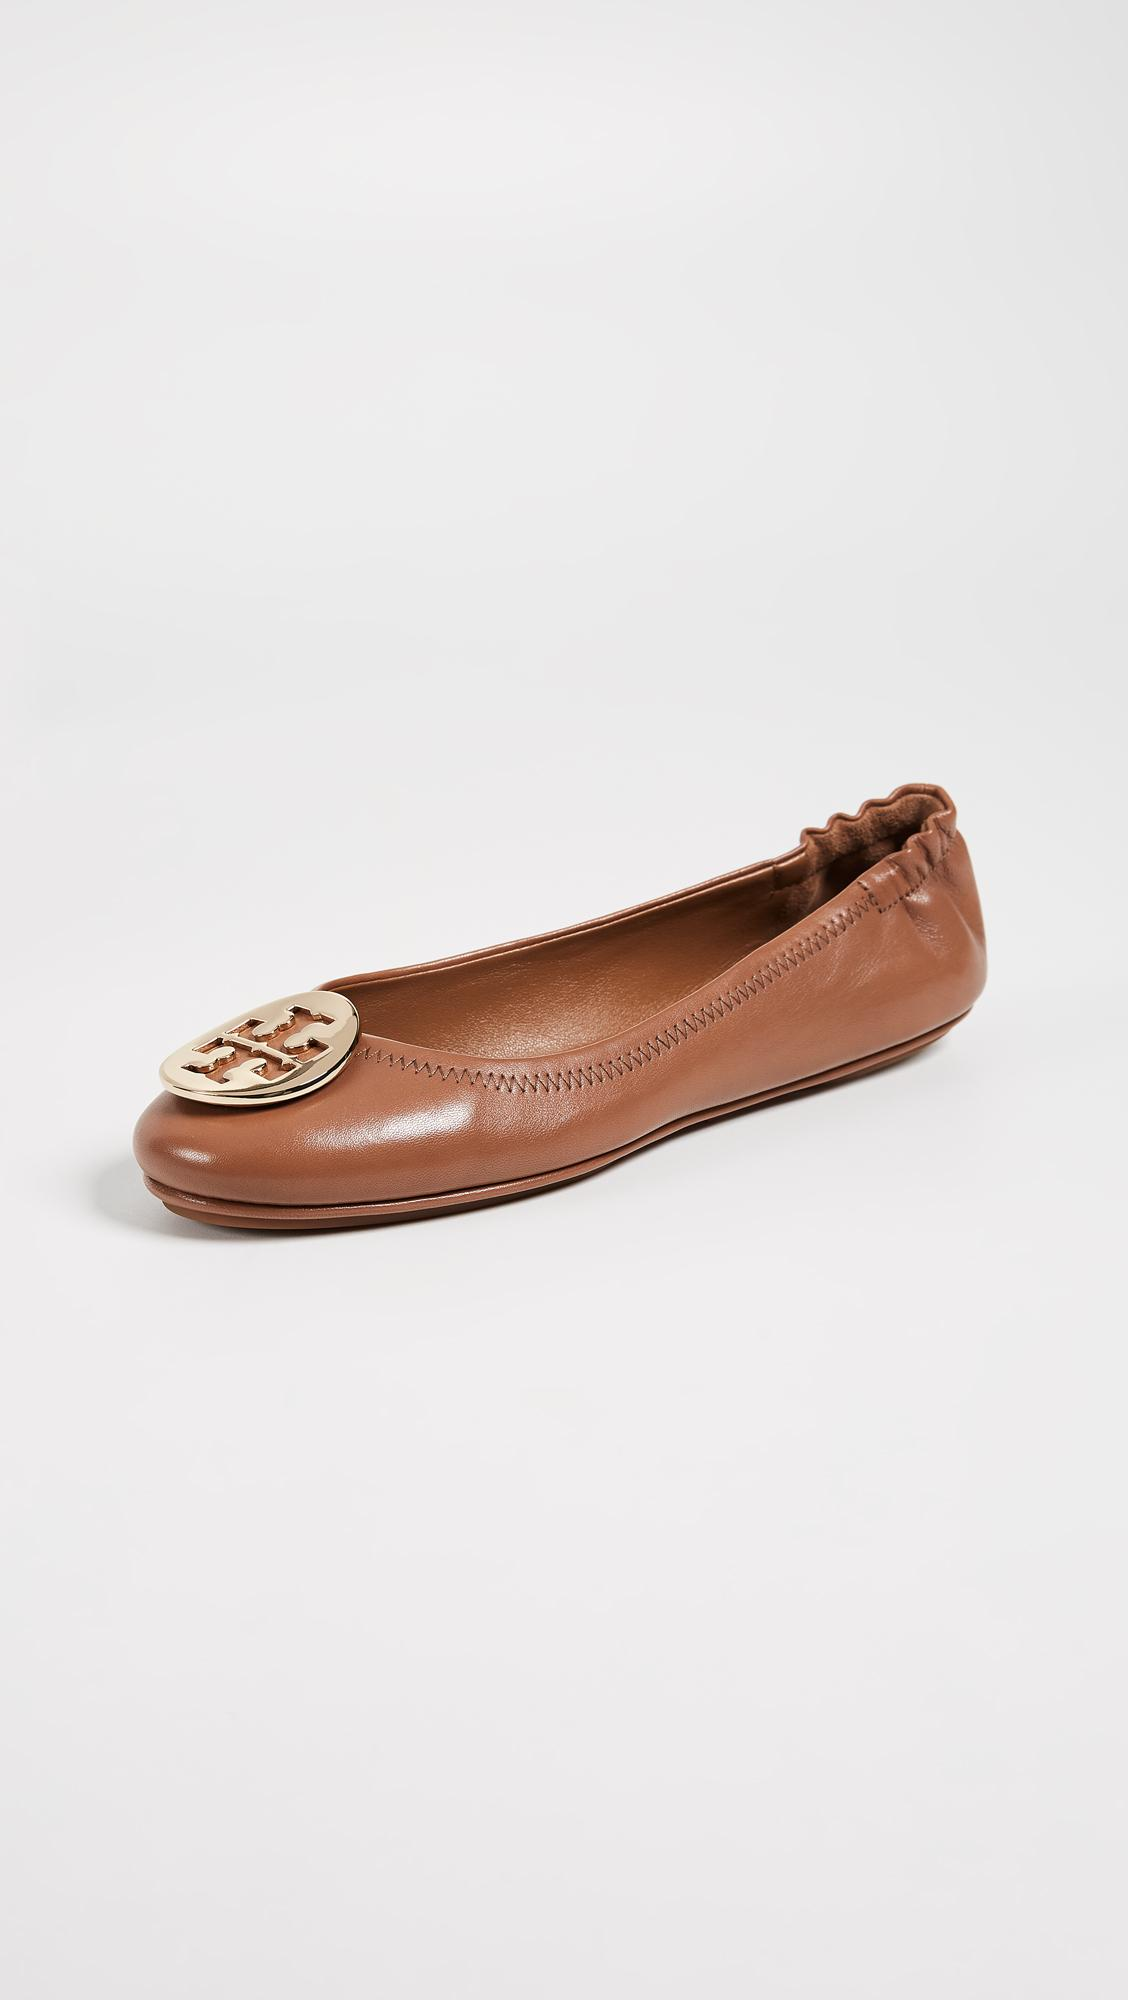 ef58f22e64fb44 Tory Burch Minnie Travel Ballet Flats in Brown - Save 6% - Lyst